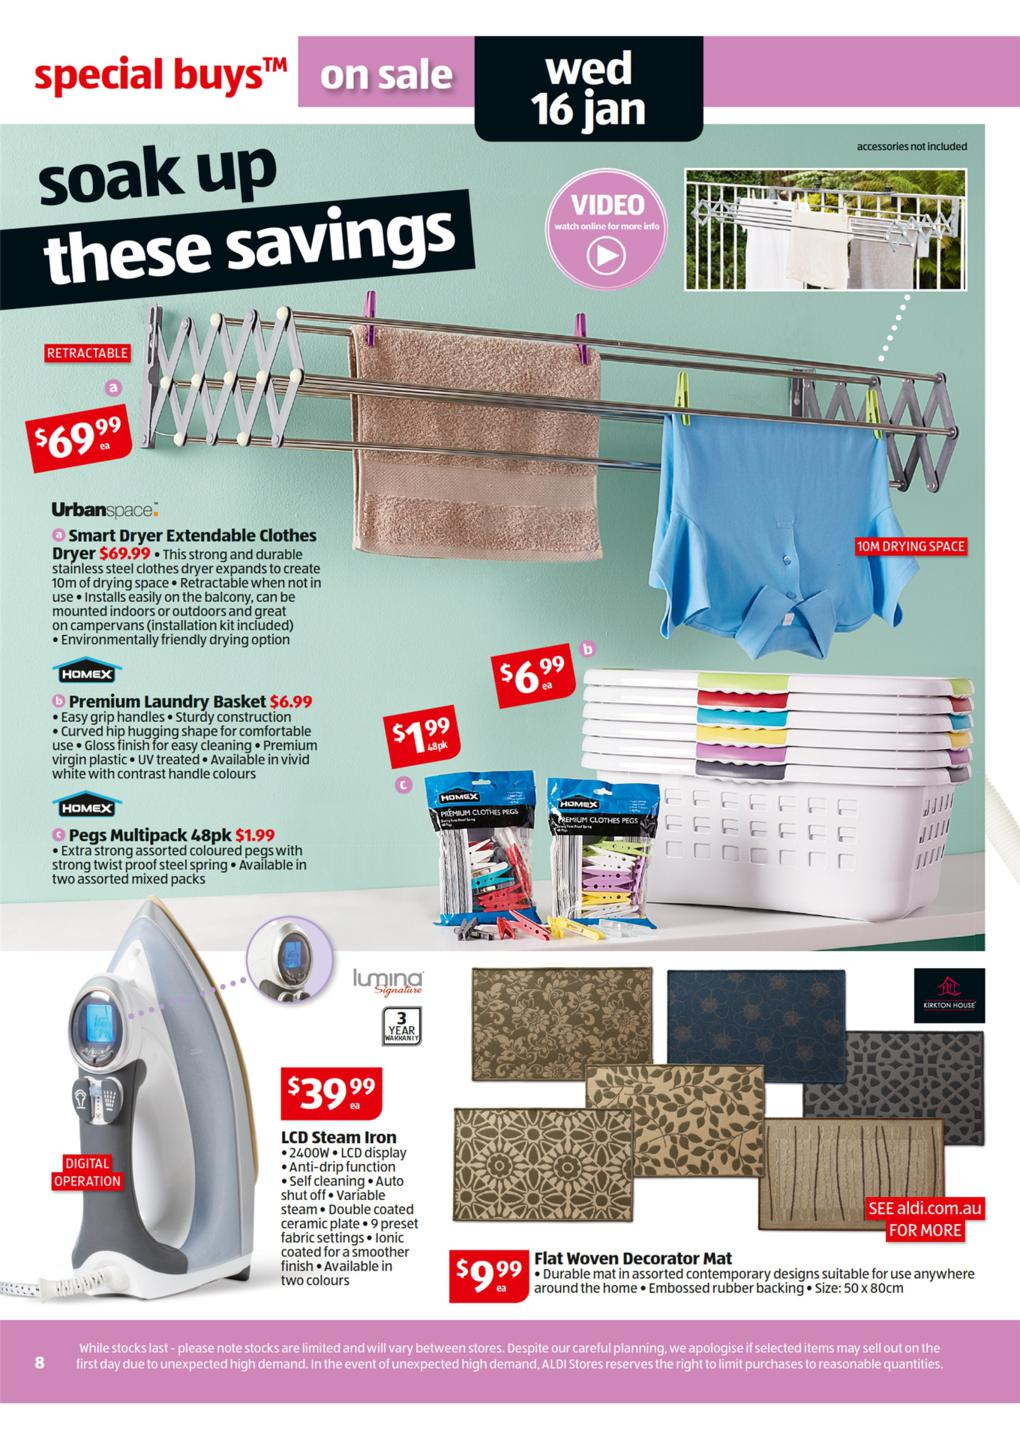 ALDI Catalogue - Special Buys Wk 3 January Page 8 Pg.8